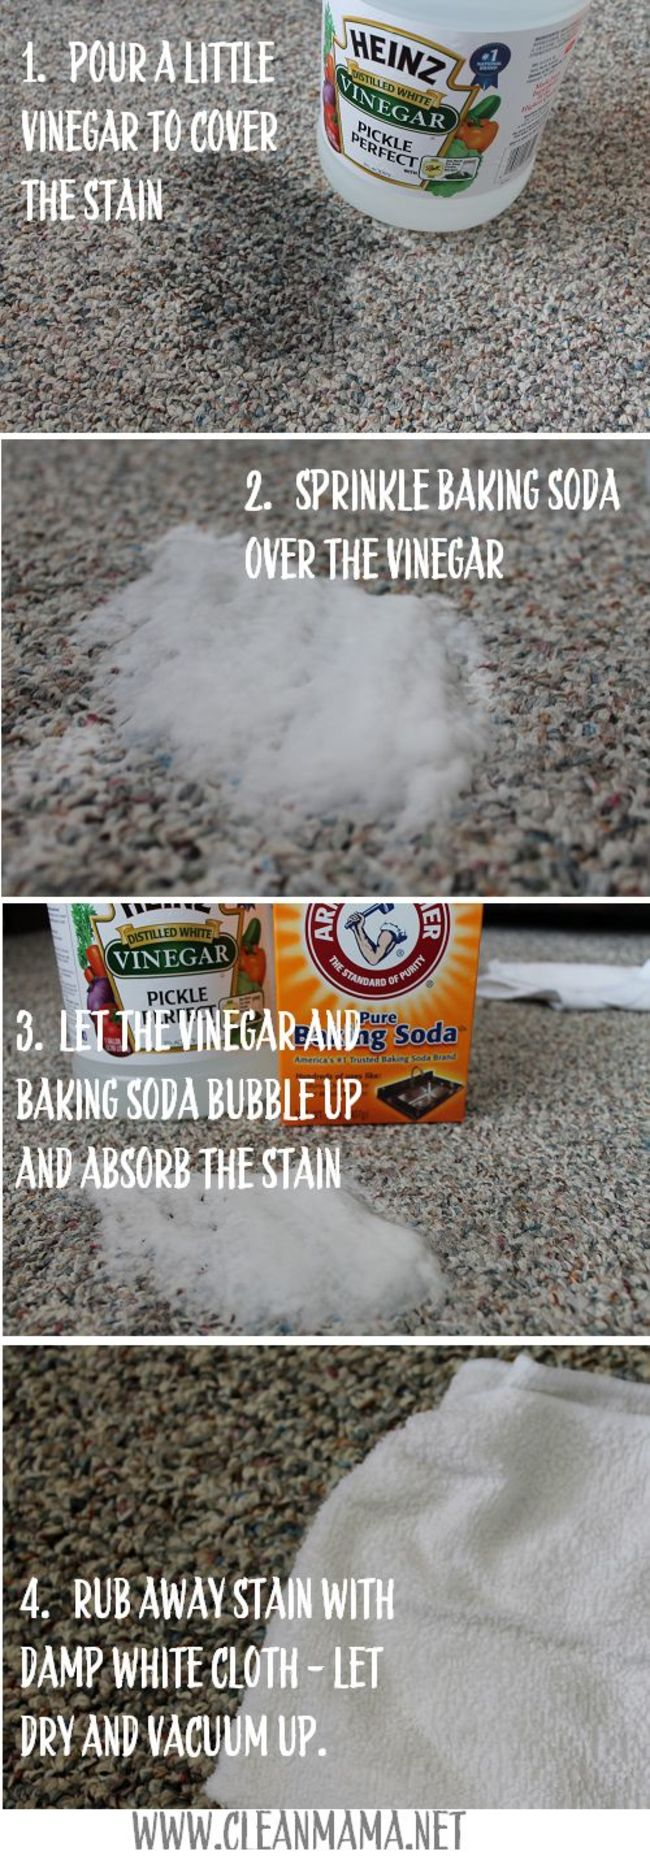 17. Vinergar and baking soda to the rescue!